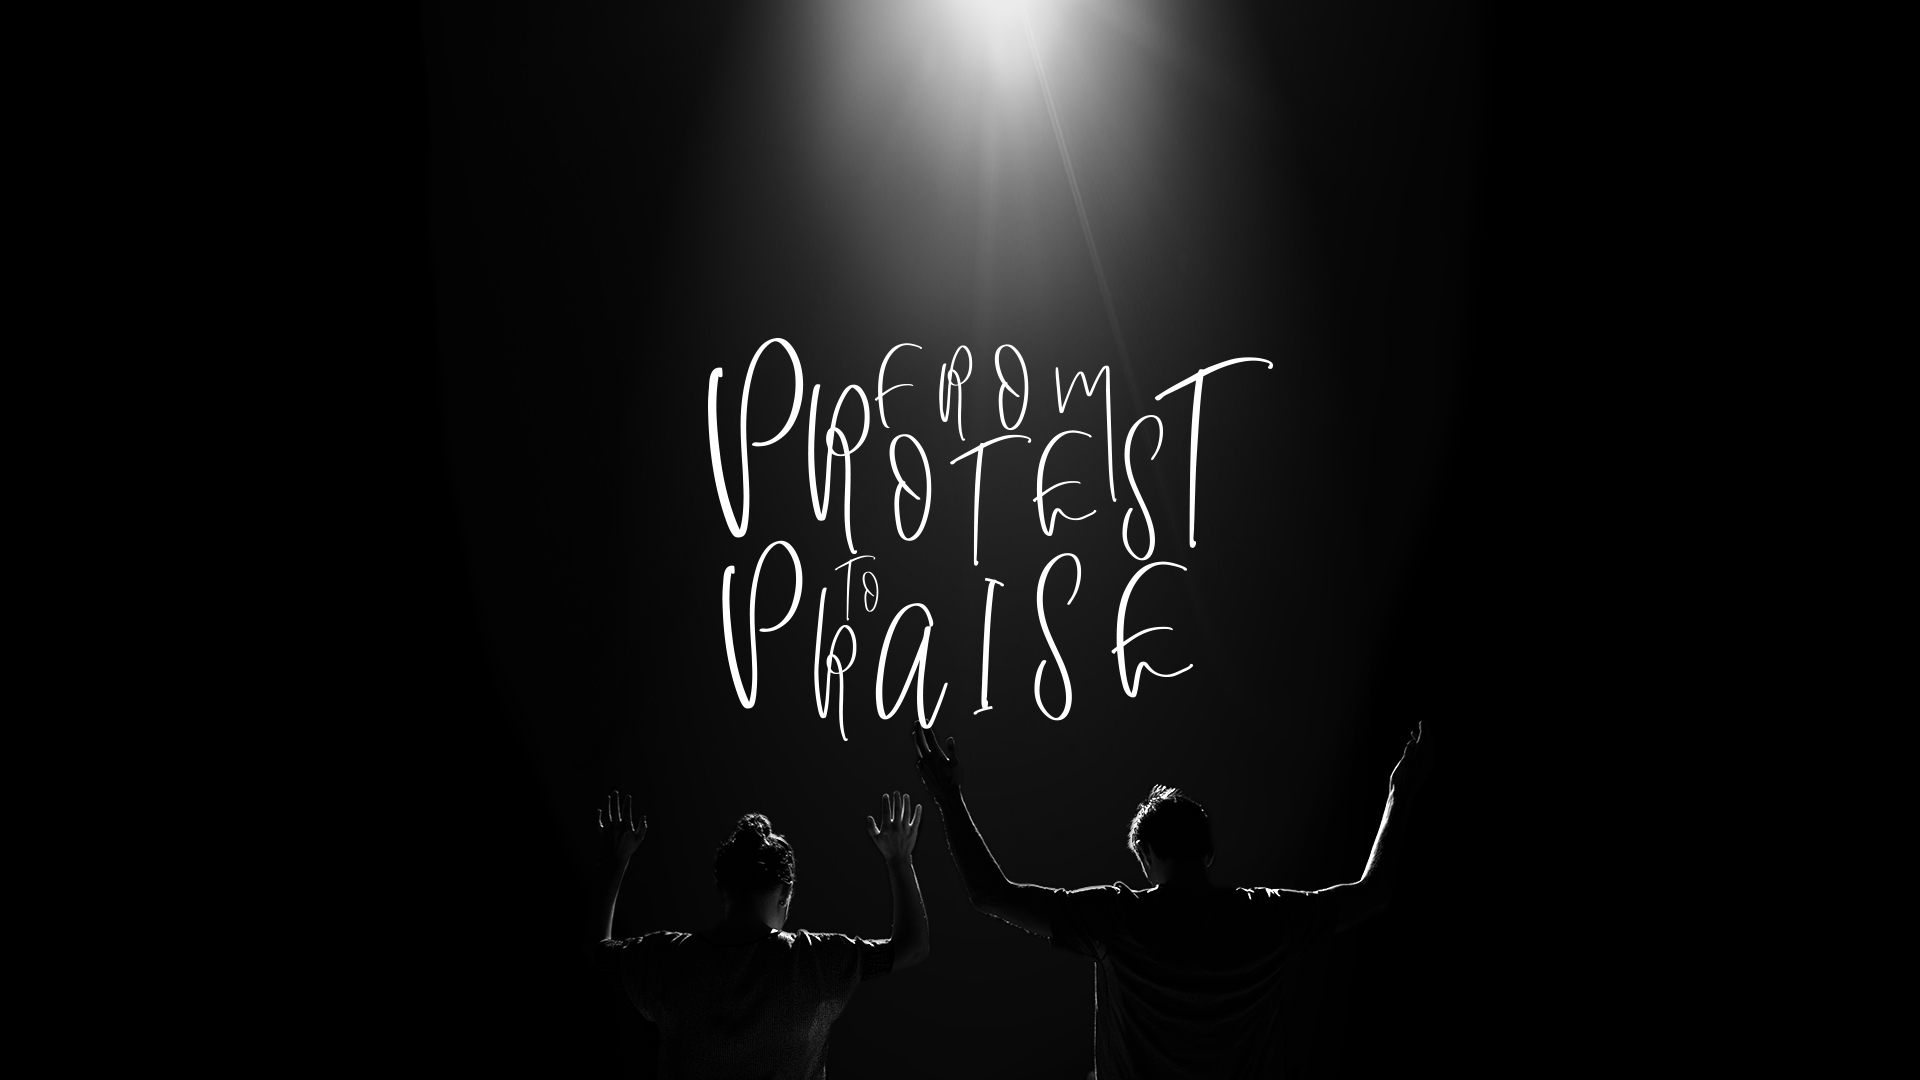 From Protest to Praise (Summer in the Psalms)